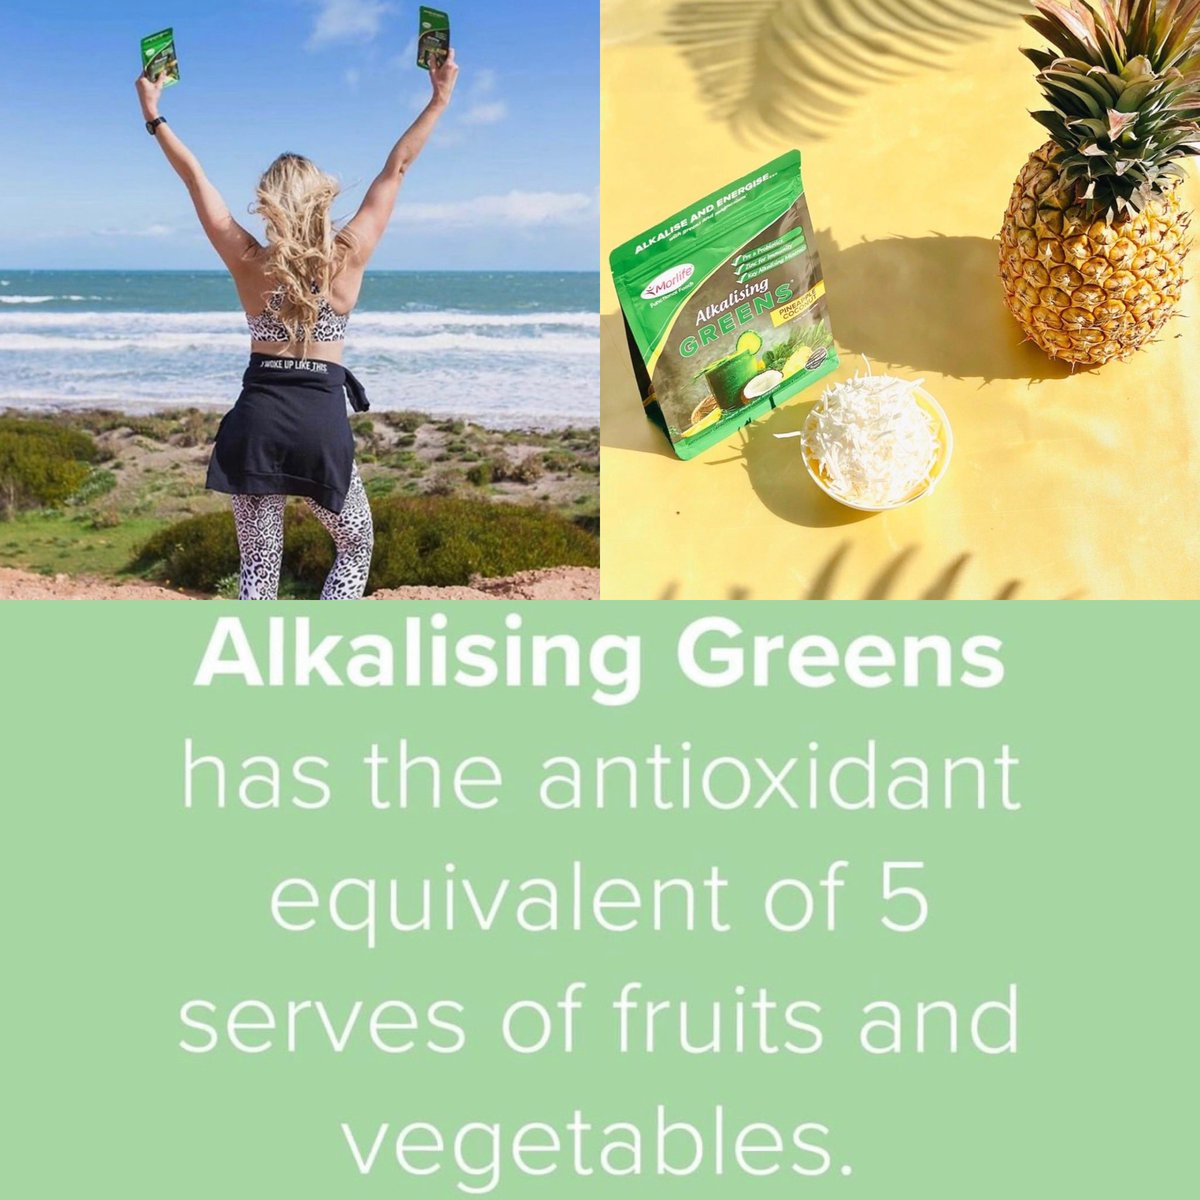 Well worth adding alkalising greens to your diet. Feel better every day! twitter.com/morlife_uk/sta…